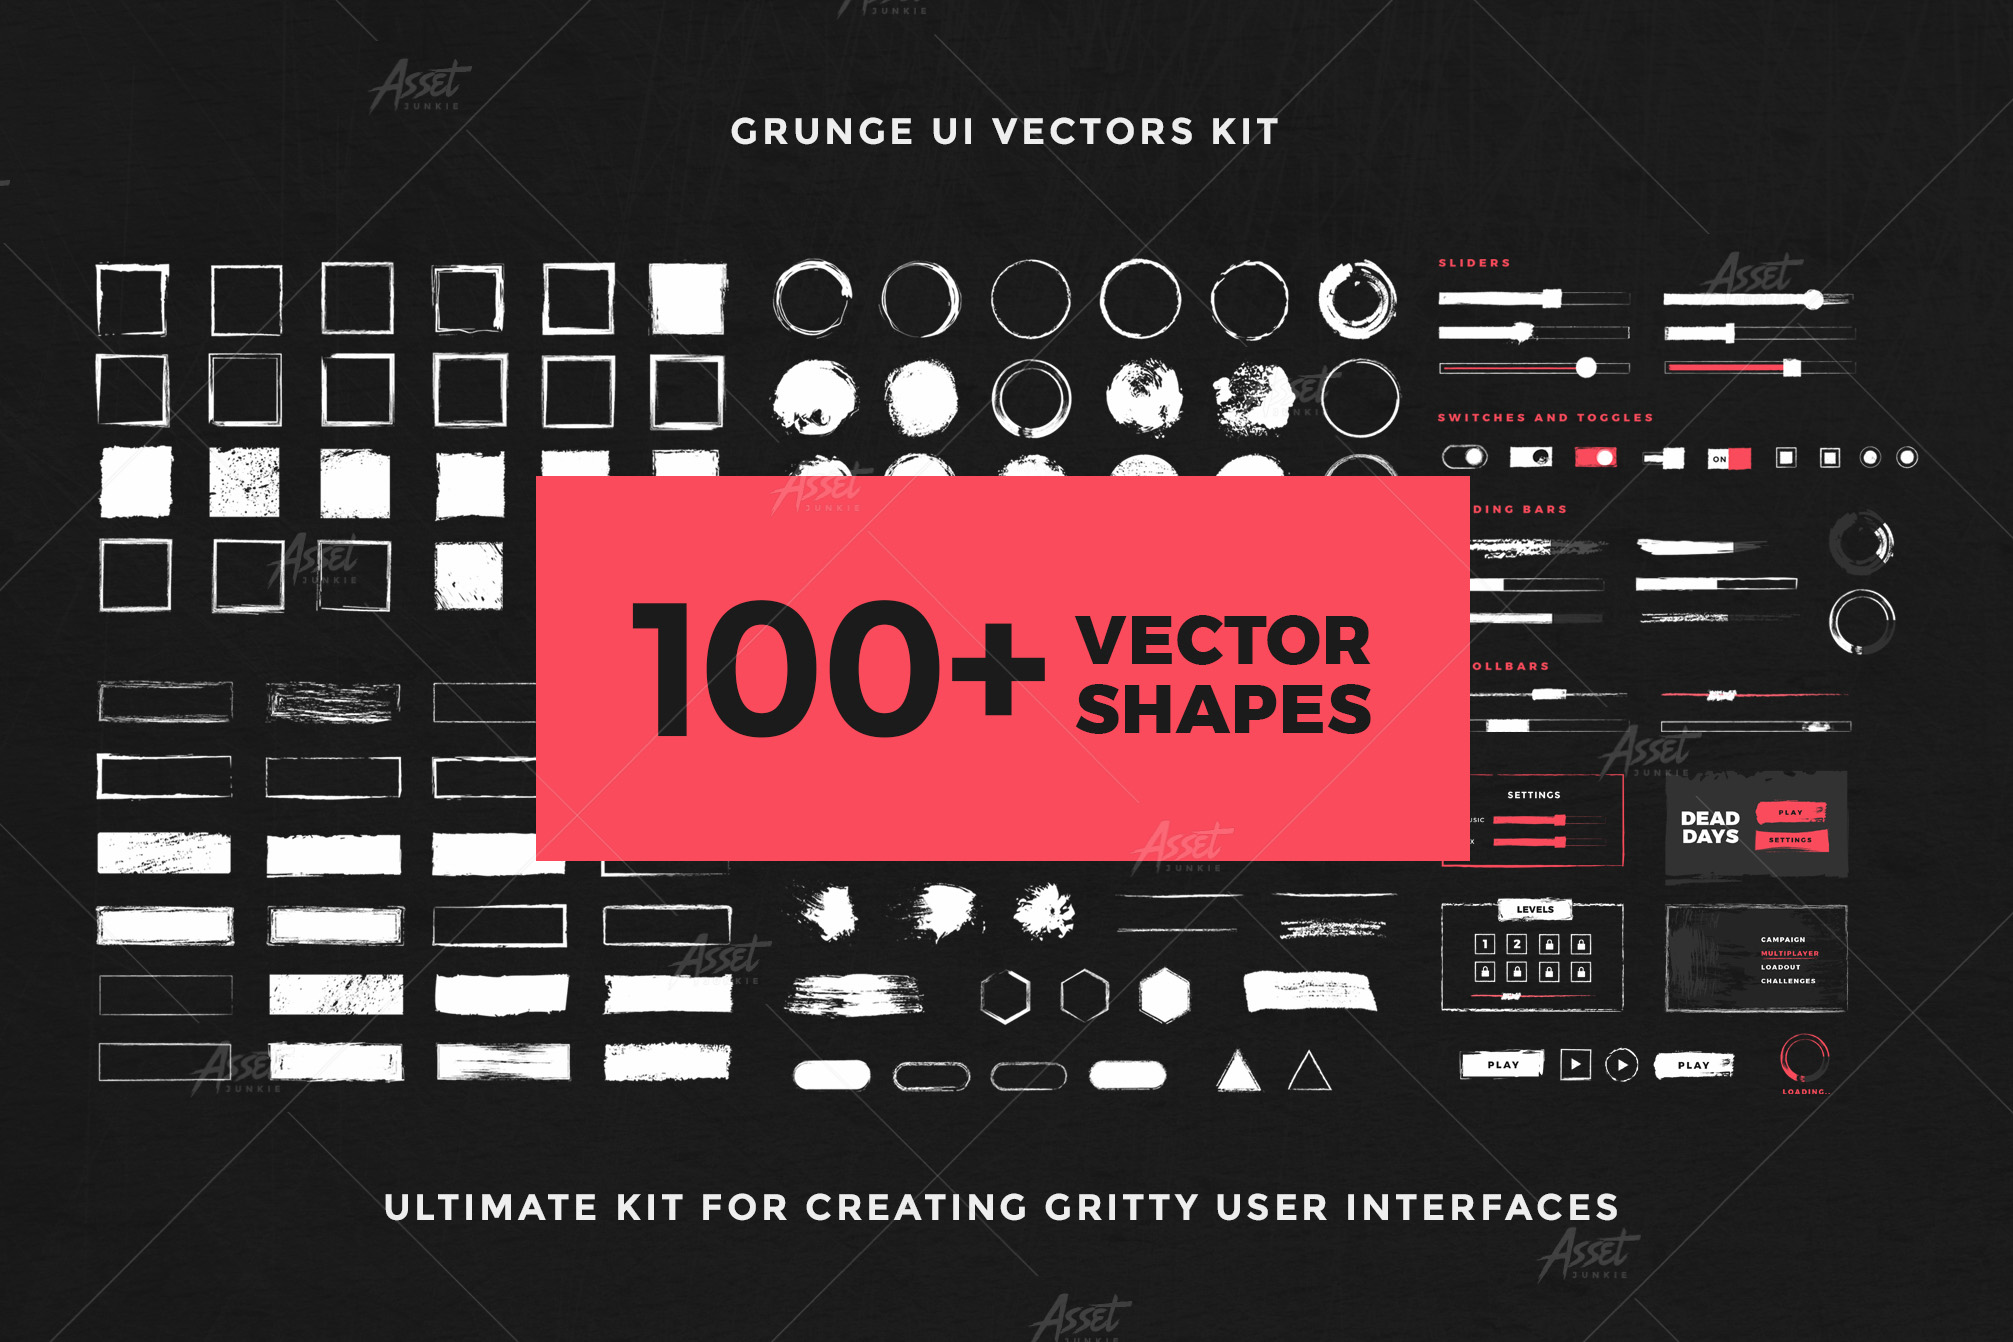 Grunge UI Vectors Kit example image 6